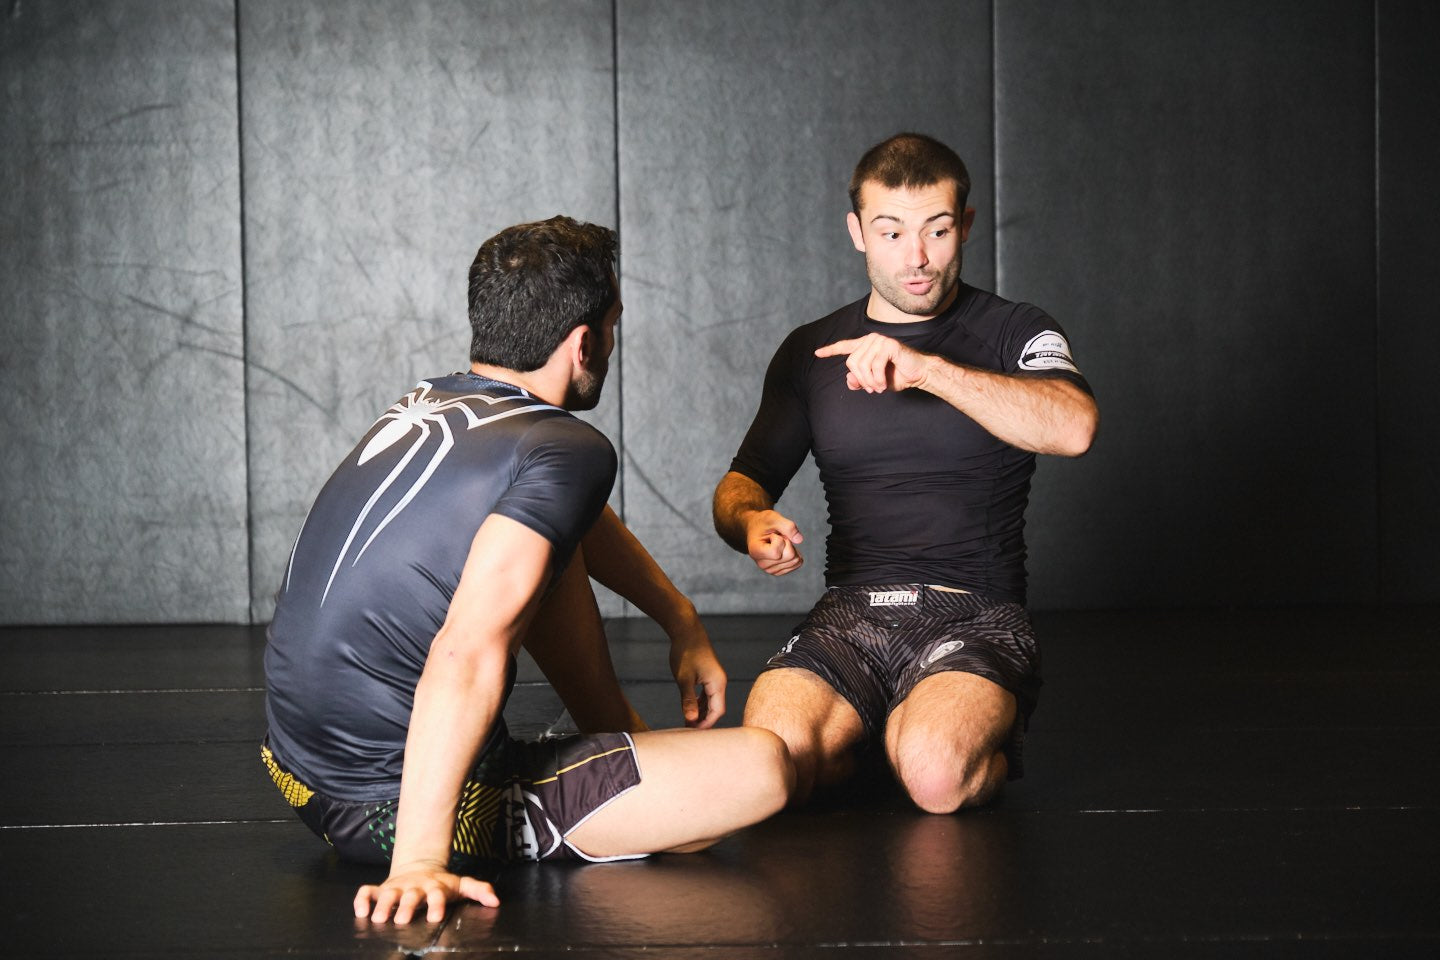 Ross Nicholls BJJ Nogi Teaching